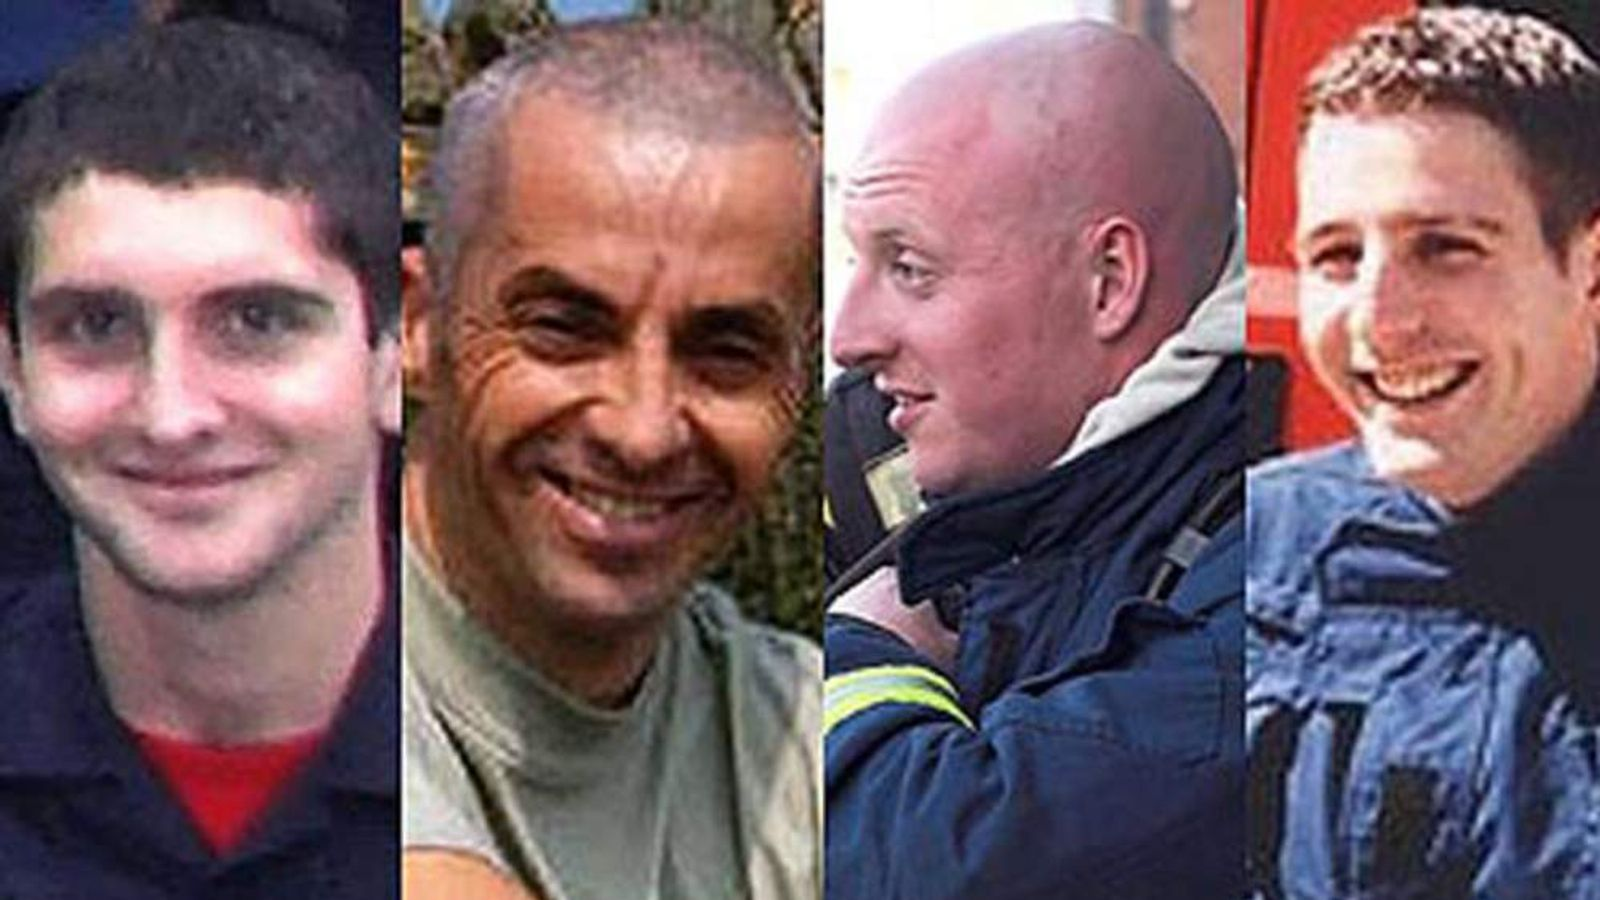 Warwickshire firemen Ashley Stephens, Ian Reid, Darren Yates-Badley, John Averis